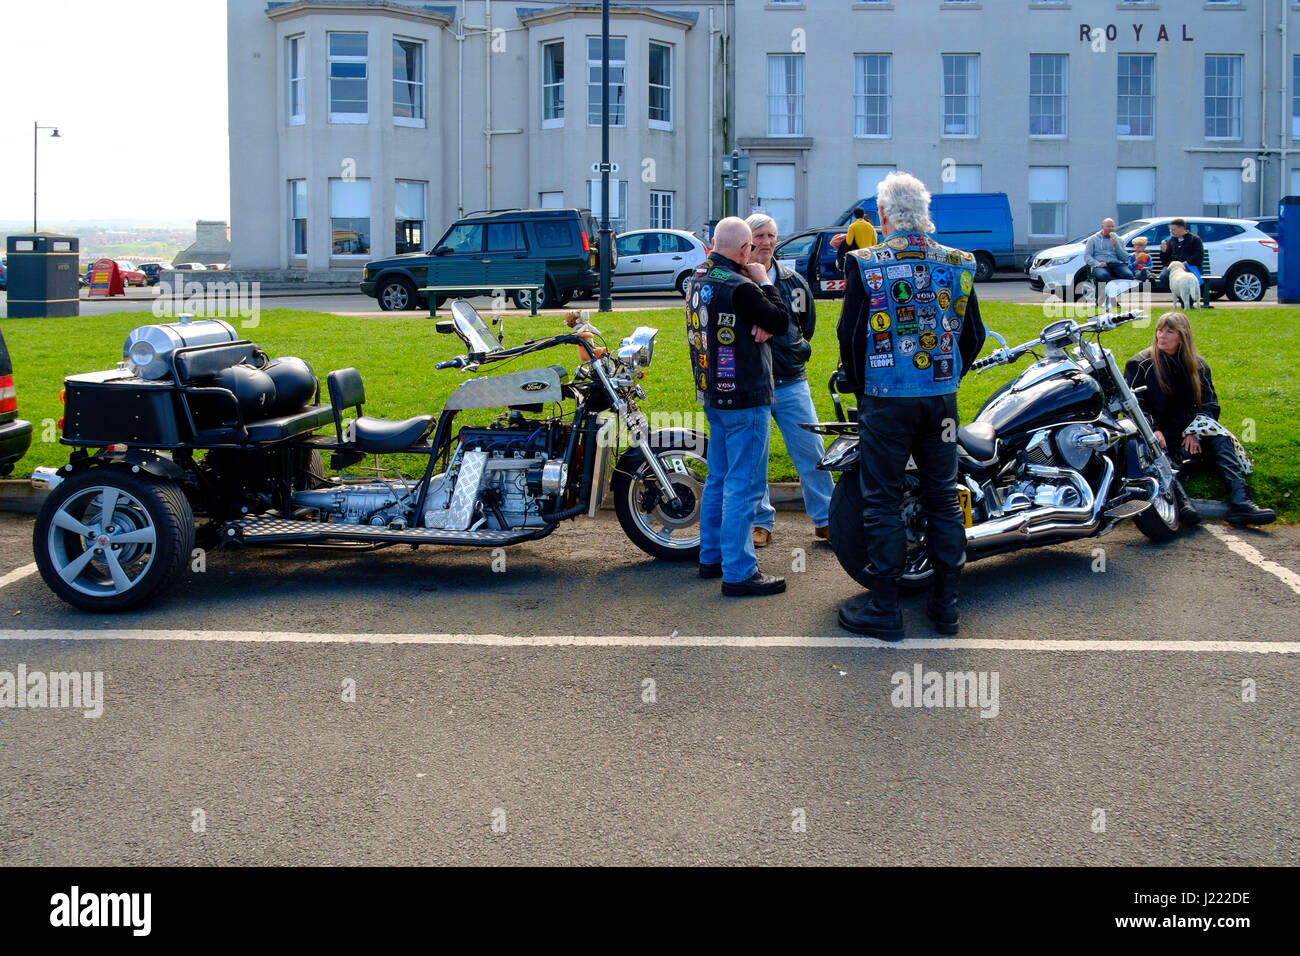 Elderly Bikers on West Cliff at Whiby Goth Week-end one with a high powered motorcycle, the other with a lrge Ford - Stock Image